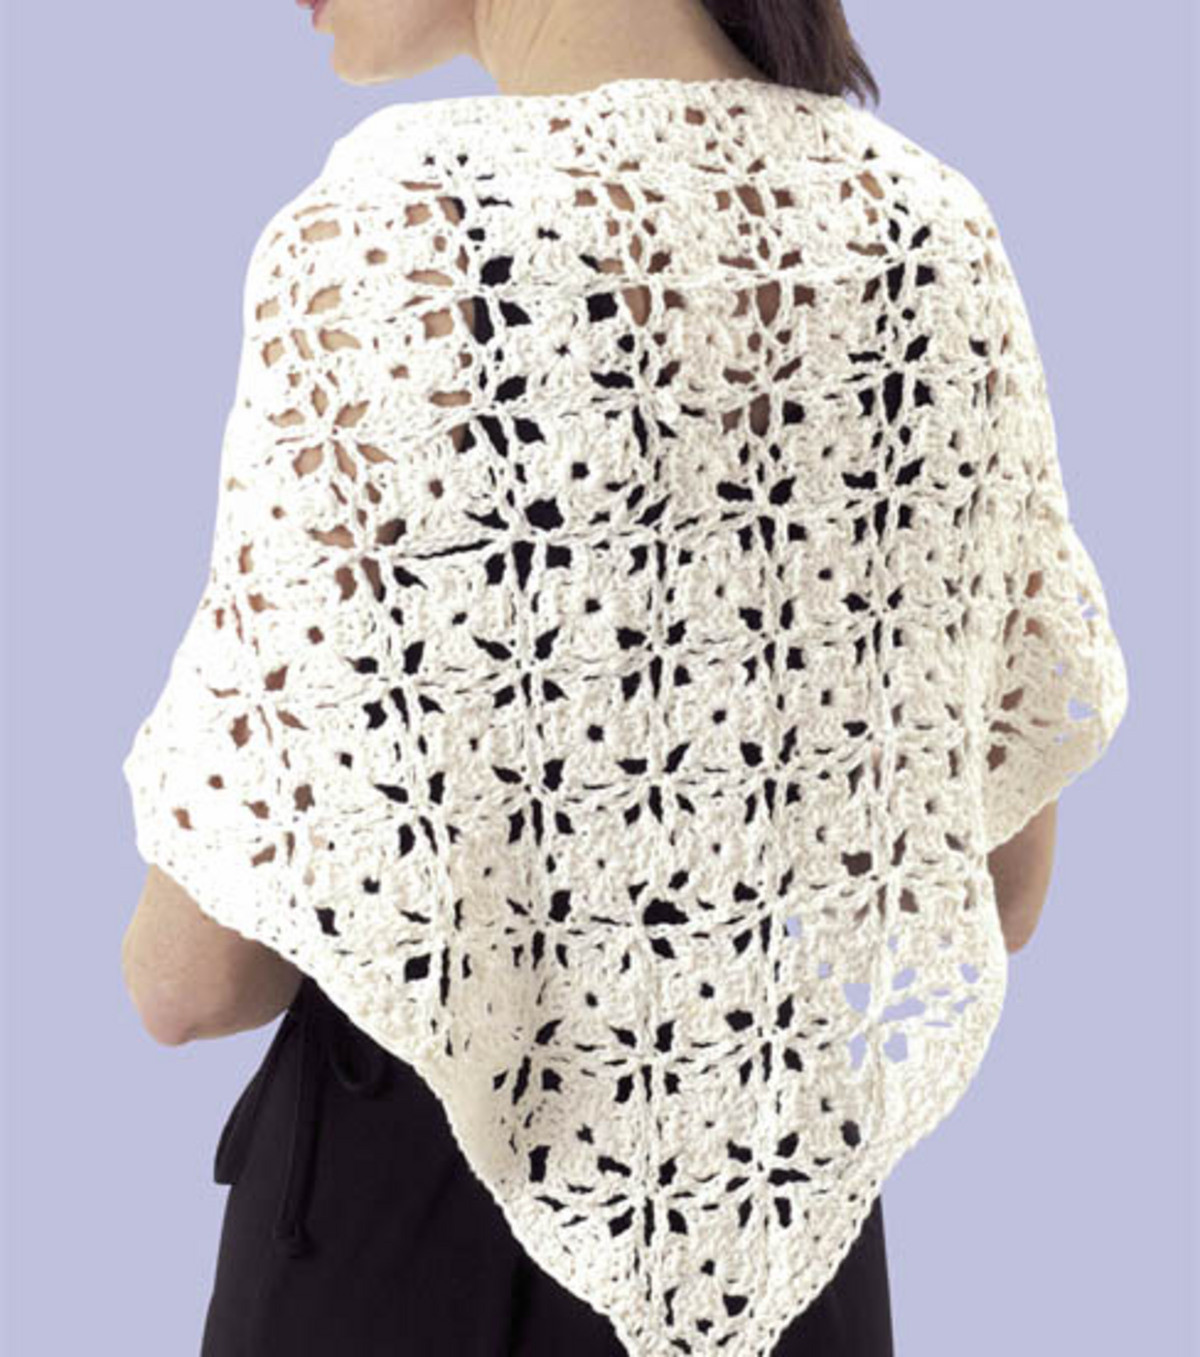 Craftdrawer Crafts paring Crochet Buying a Poncho or